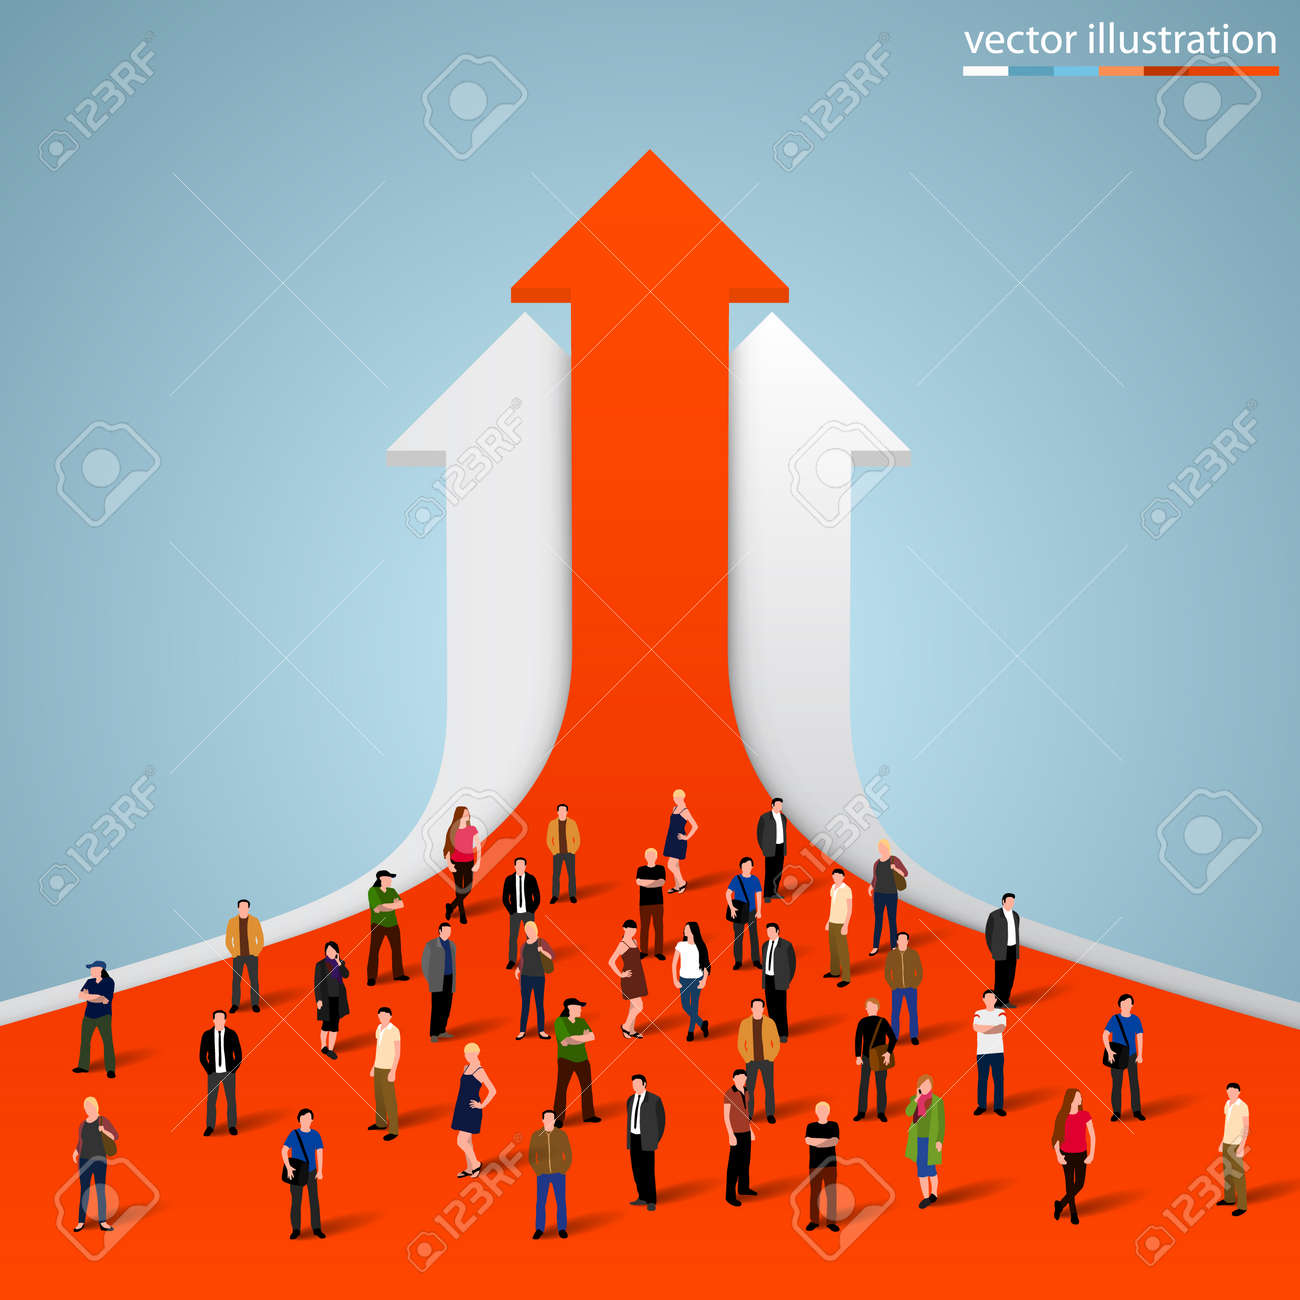 People crowd on the graph. Vector illustration - 36051365